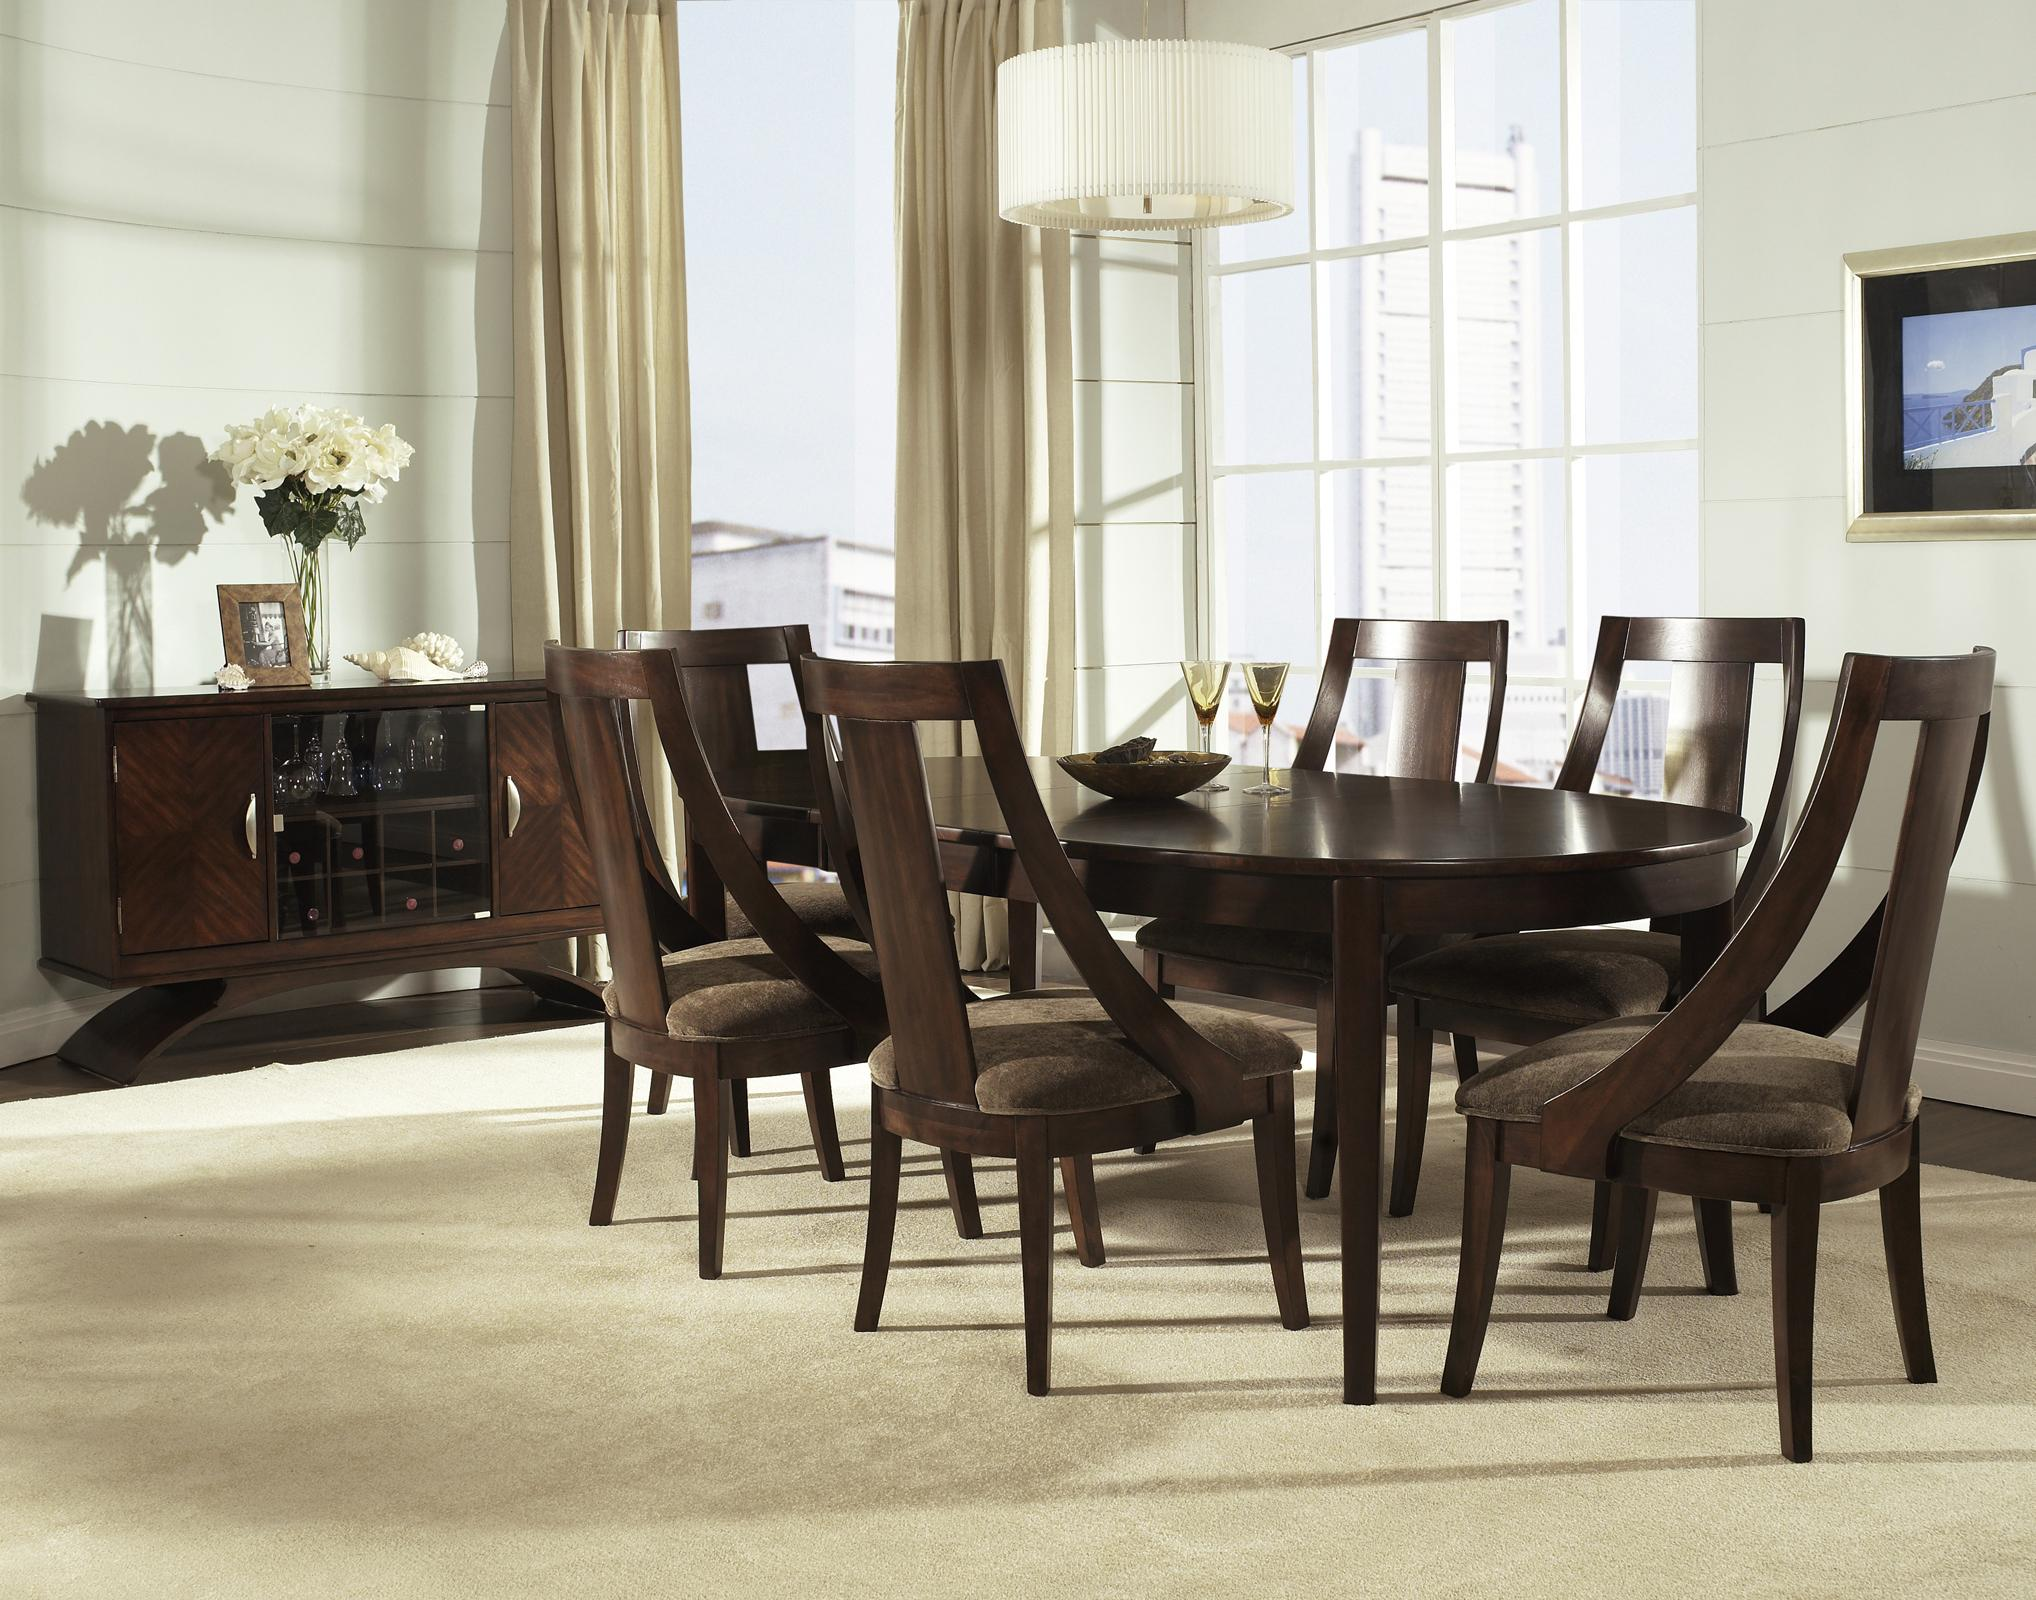 Somerton Cirque 7 Piece Oval Dining Set in Merlot by Dining Rooms